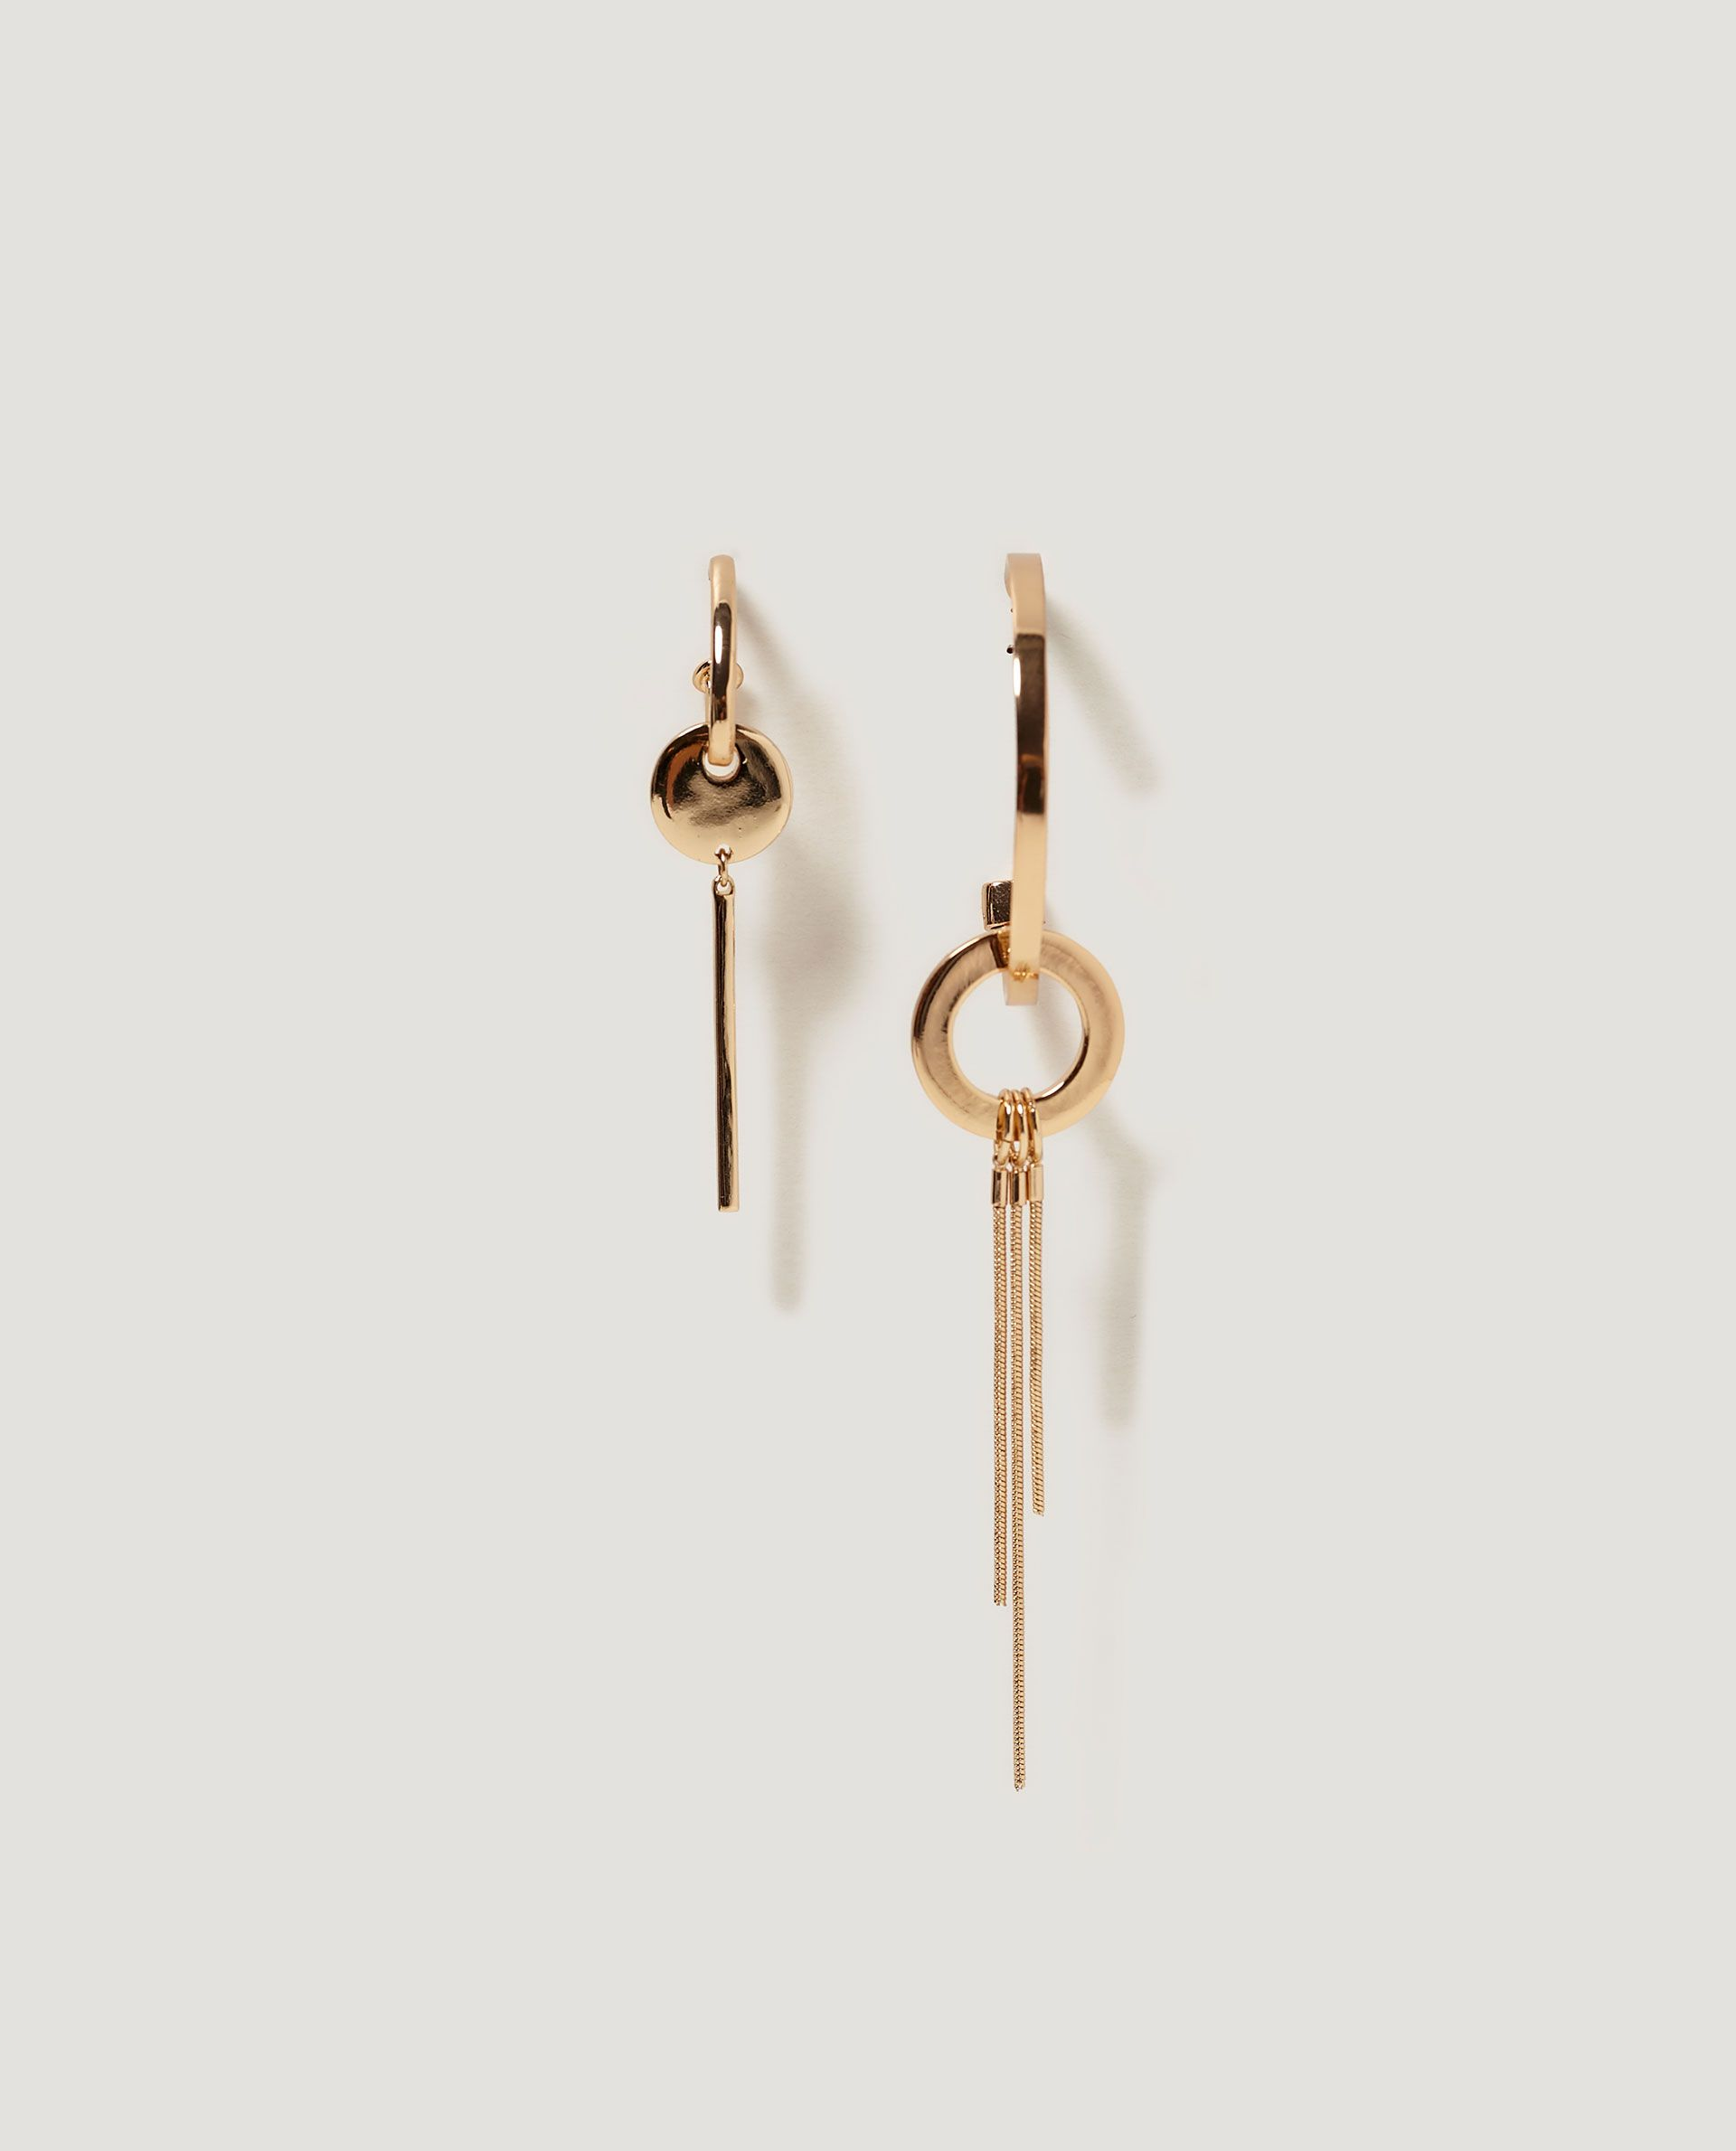 onlangs en featured products ellen beekmans asymmetric gold earrings winkel